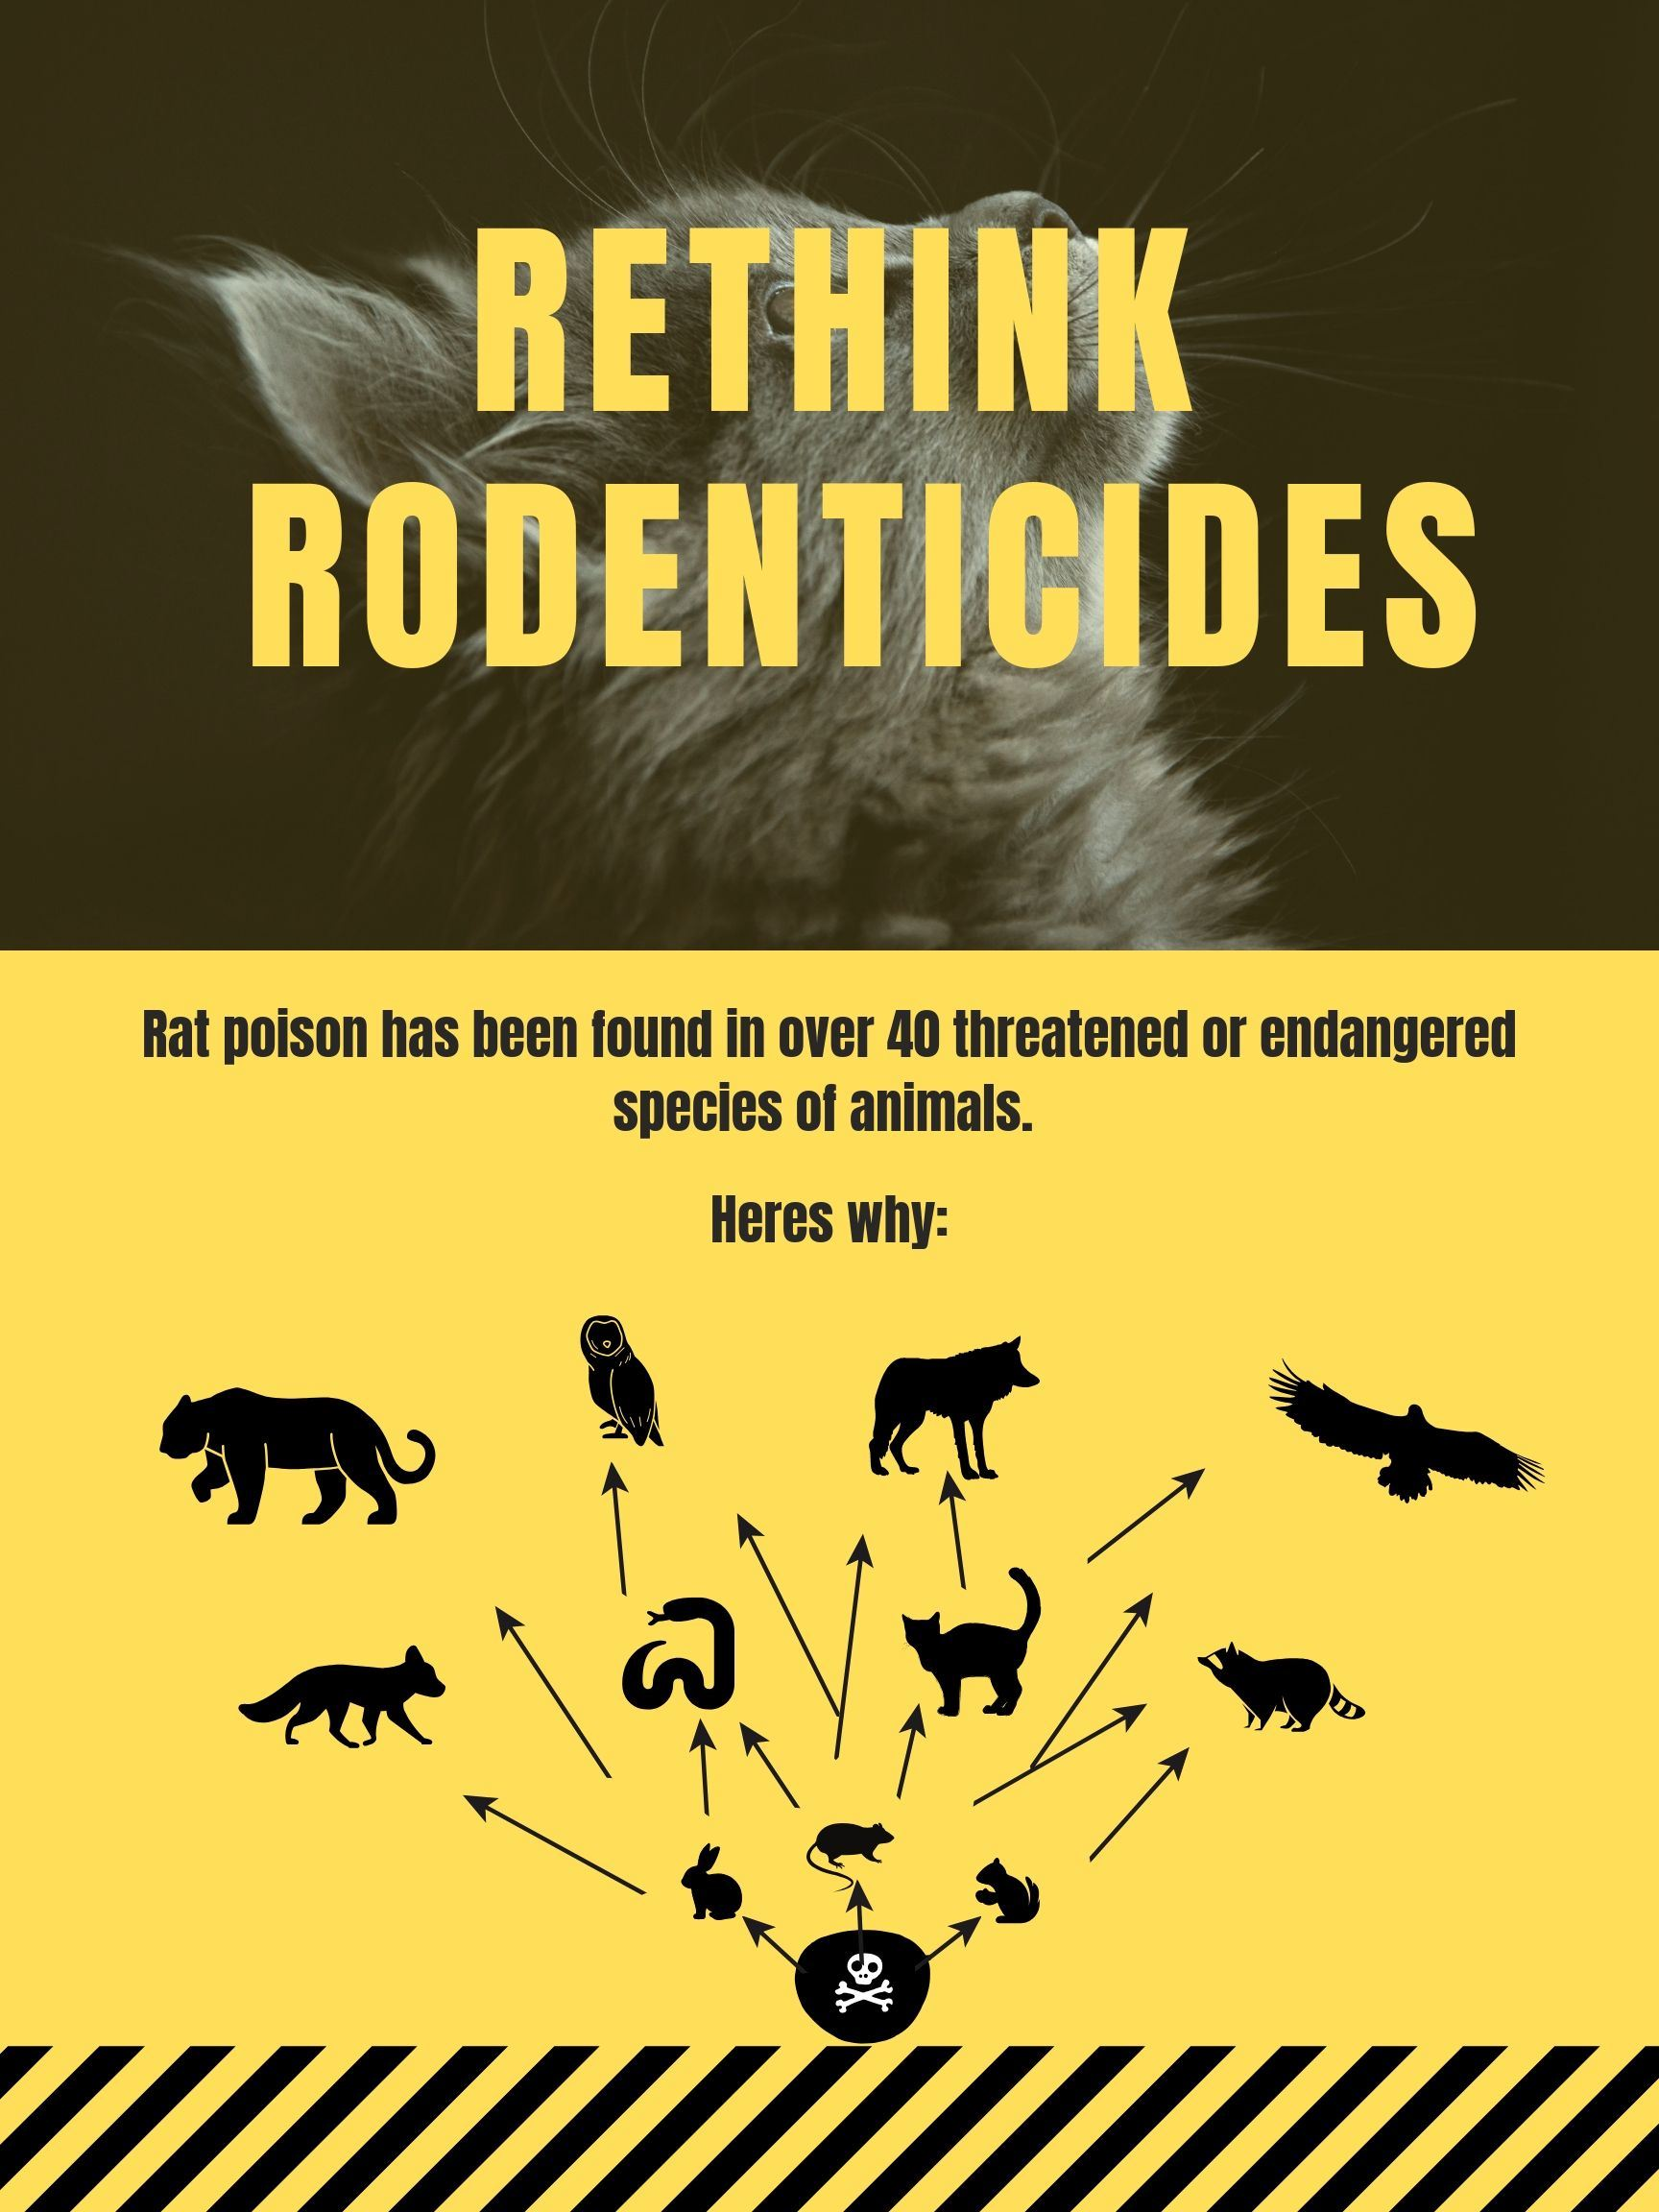 Rodenticide Image